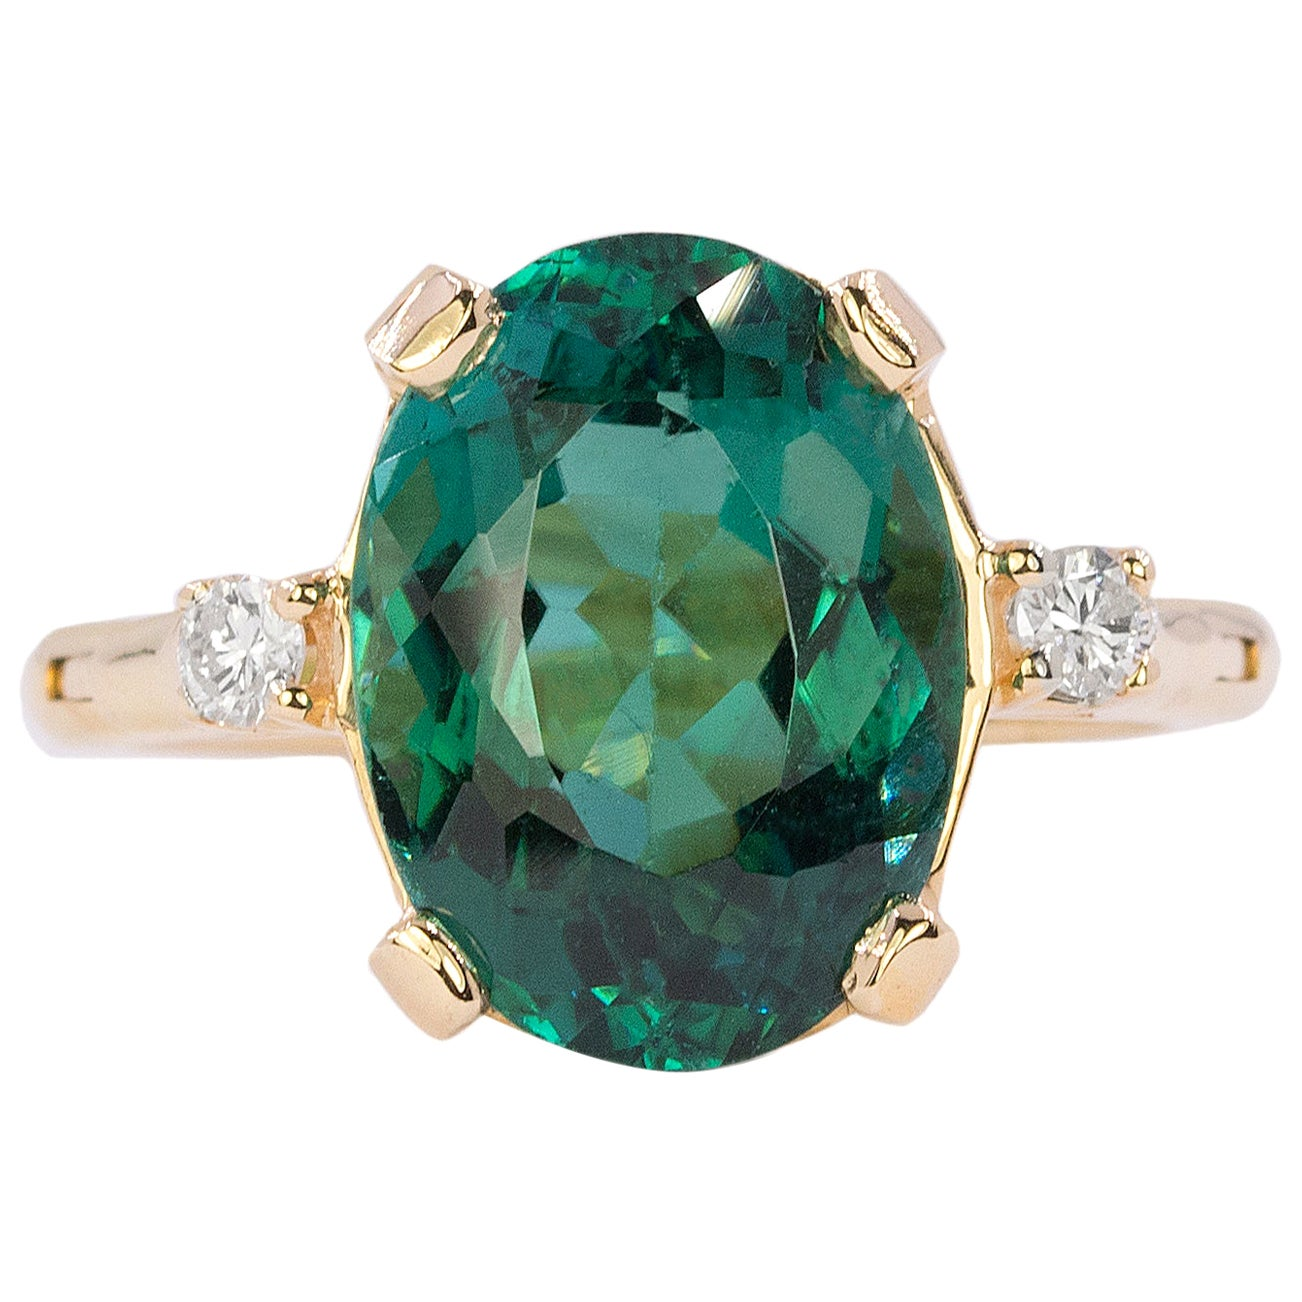 Yellow Gold Ring with 8.32 Carat Blue-Green Tourmaline